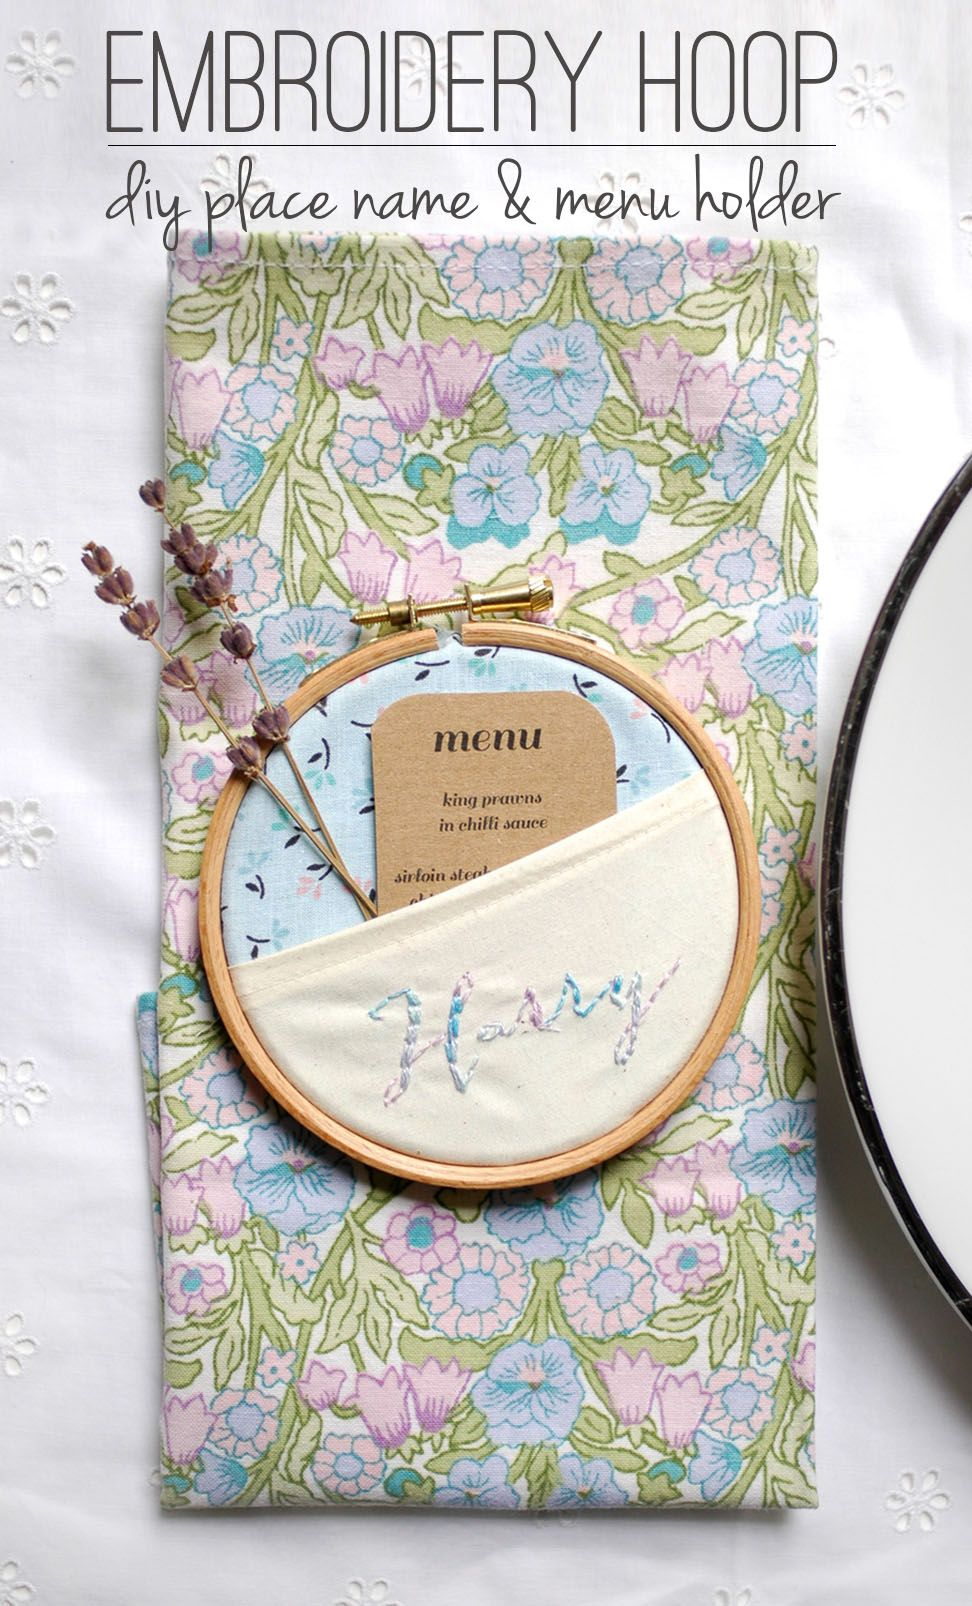 Diy embroidery hoop place names party entertaining